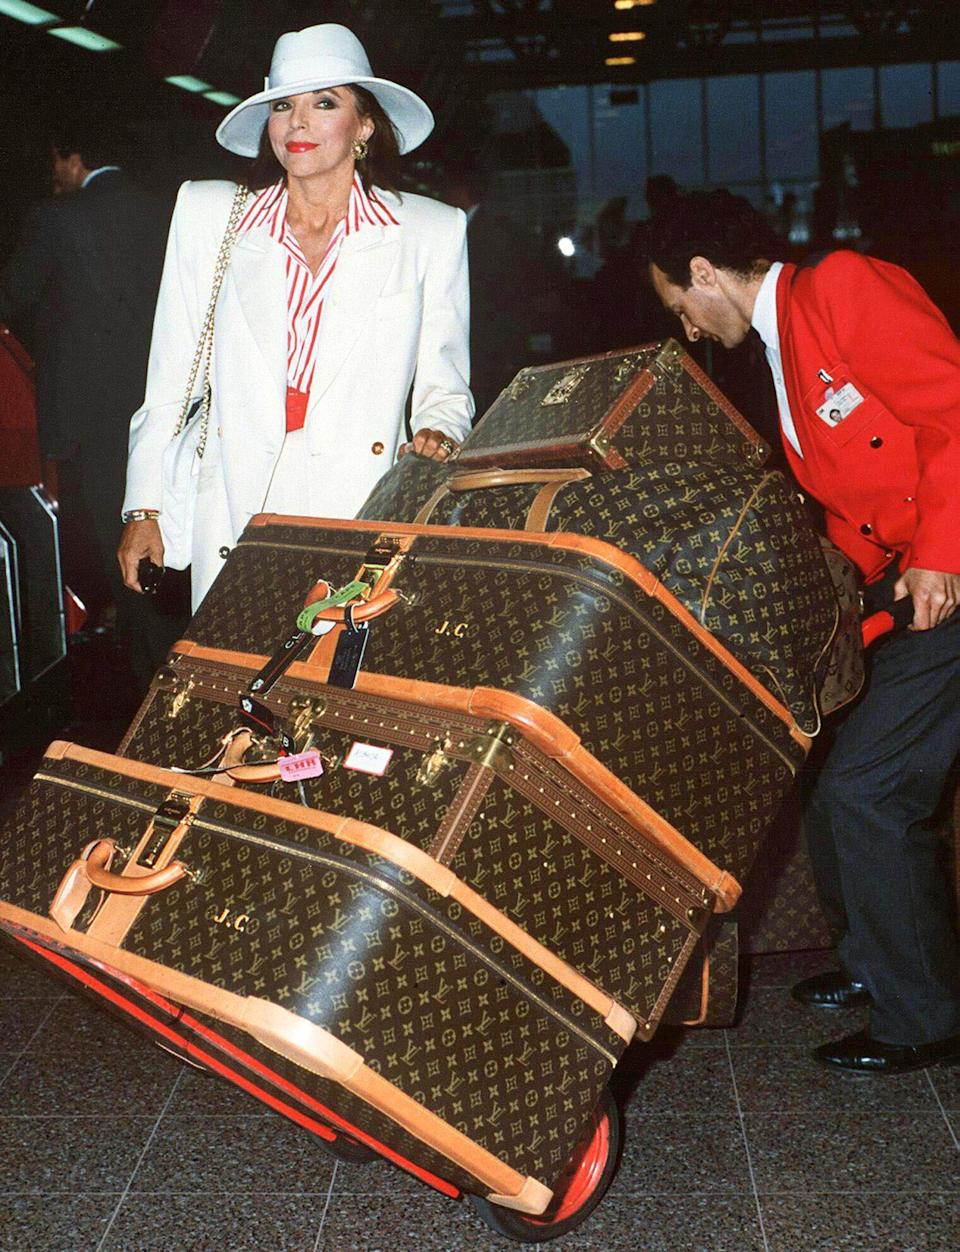 """<p>Famous for her love of luxury as Alexis Carrington Colby on the nighttime soap <em>Dynasty</em>, the star took logos to a new level at London's Heathrow. """"Carrying luggage can be a back-breaking job with me,"""" she tweeted in 2018.</p>"""